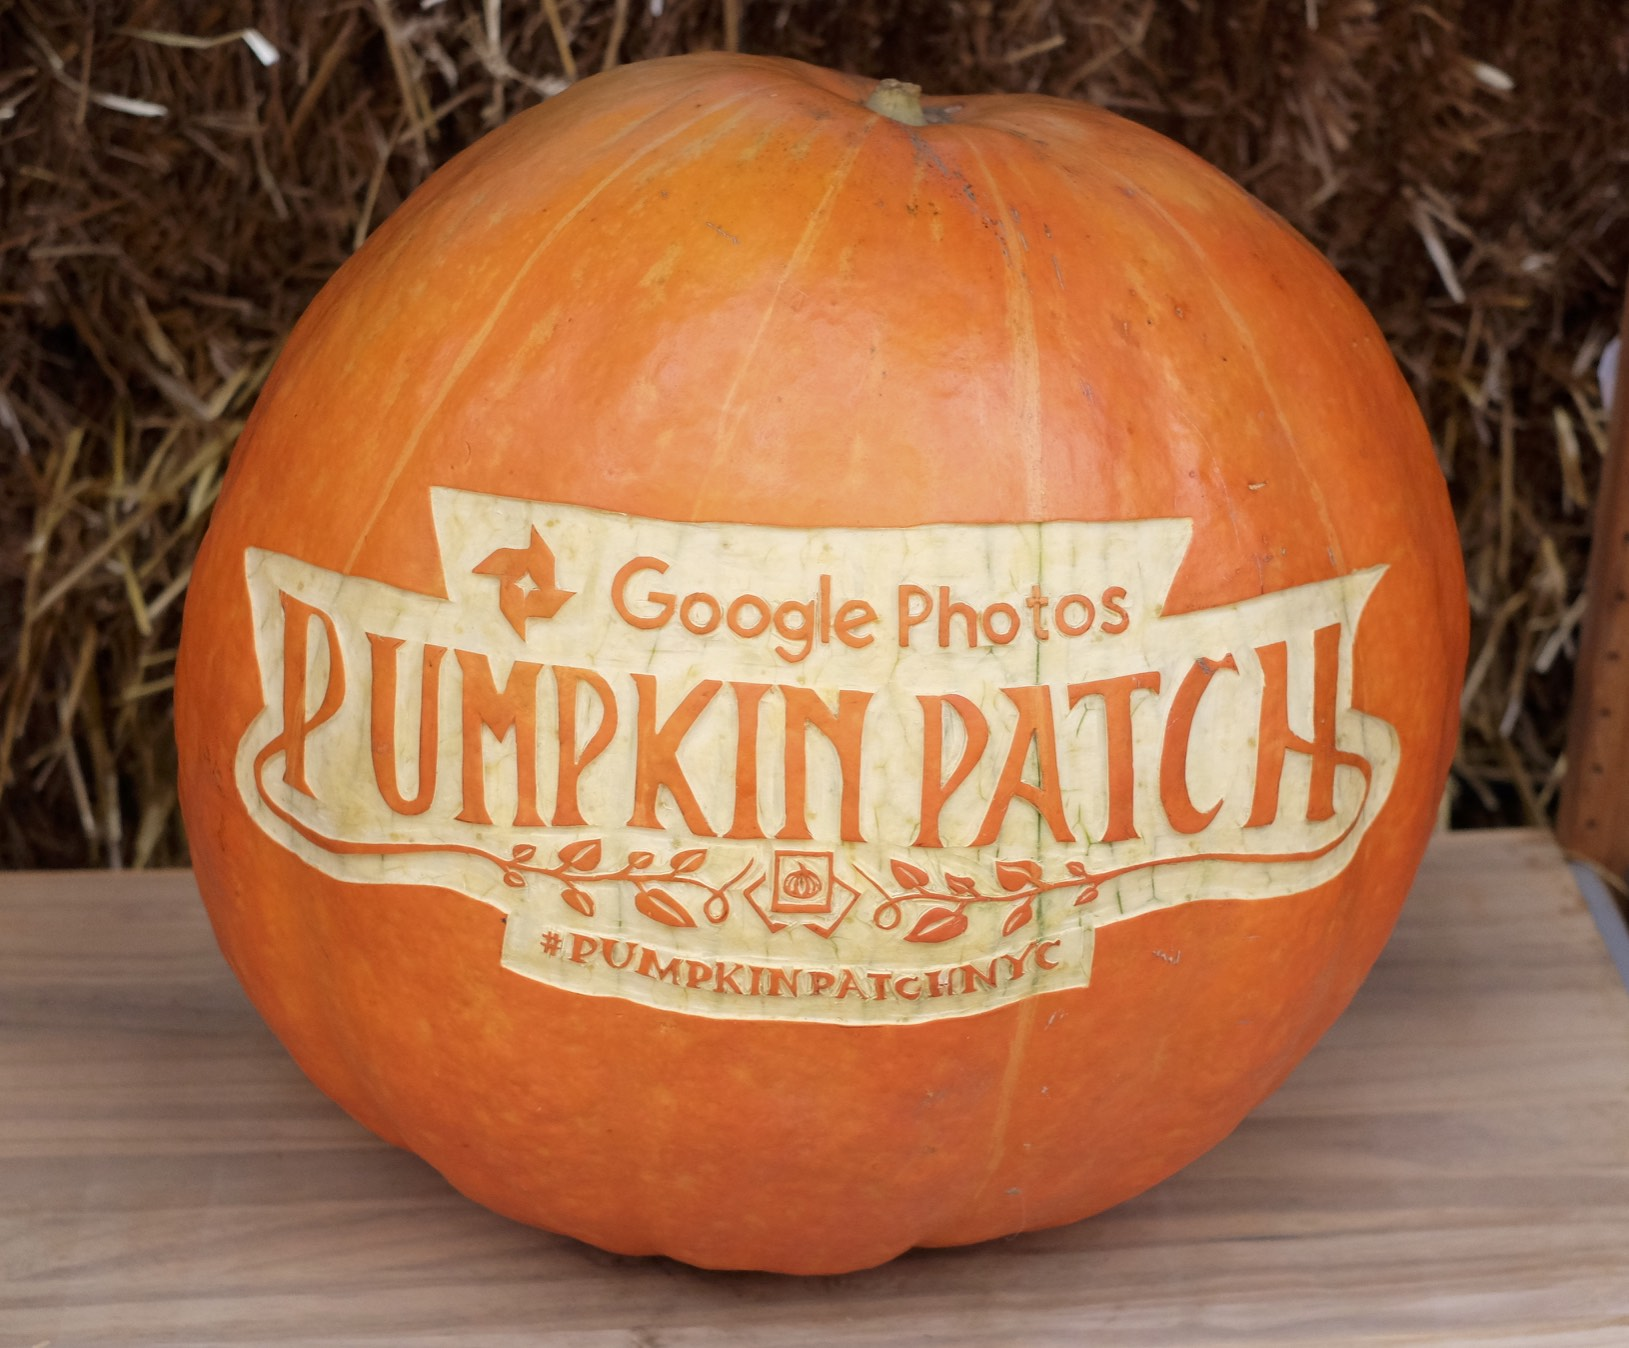 Google Photos event logo carved on 60 lb Atlantic Giant pumpkin.